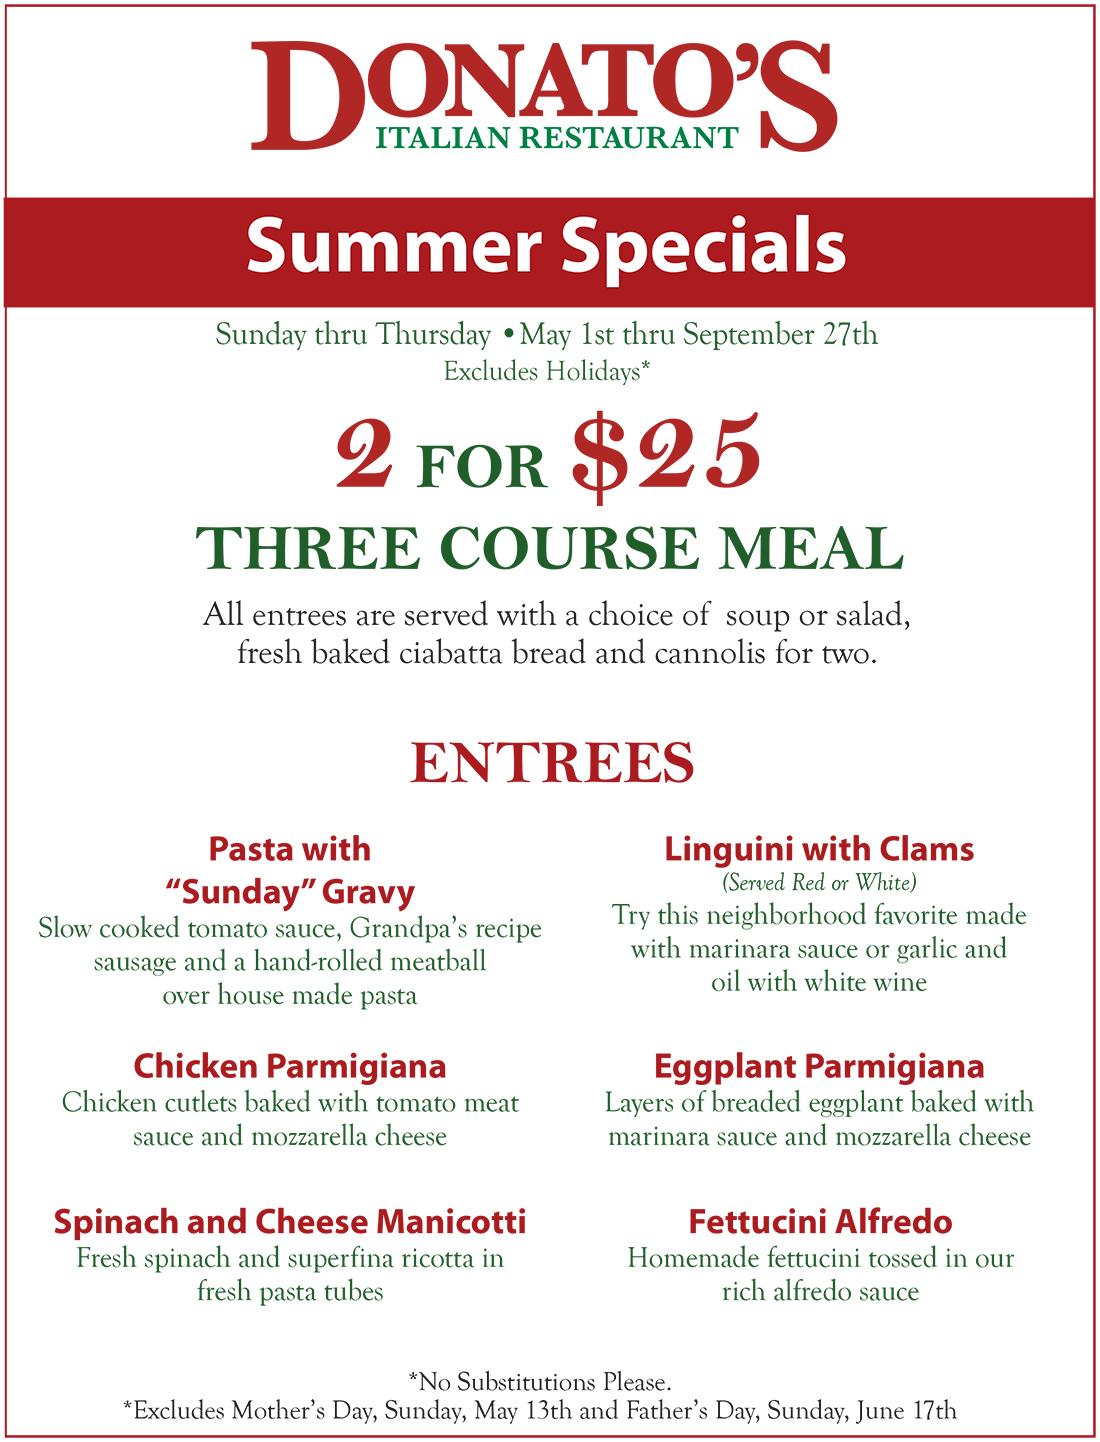 2 For 25 Summer 2018 Specials Donato S Italian Restaurant 1900 Tamiami Trail Port Charlotte Fl